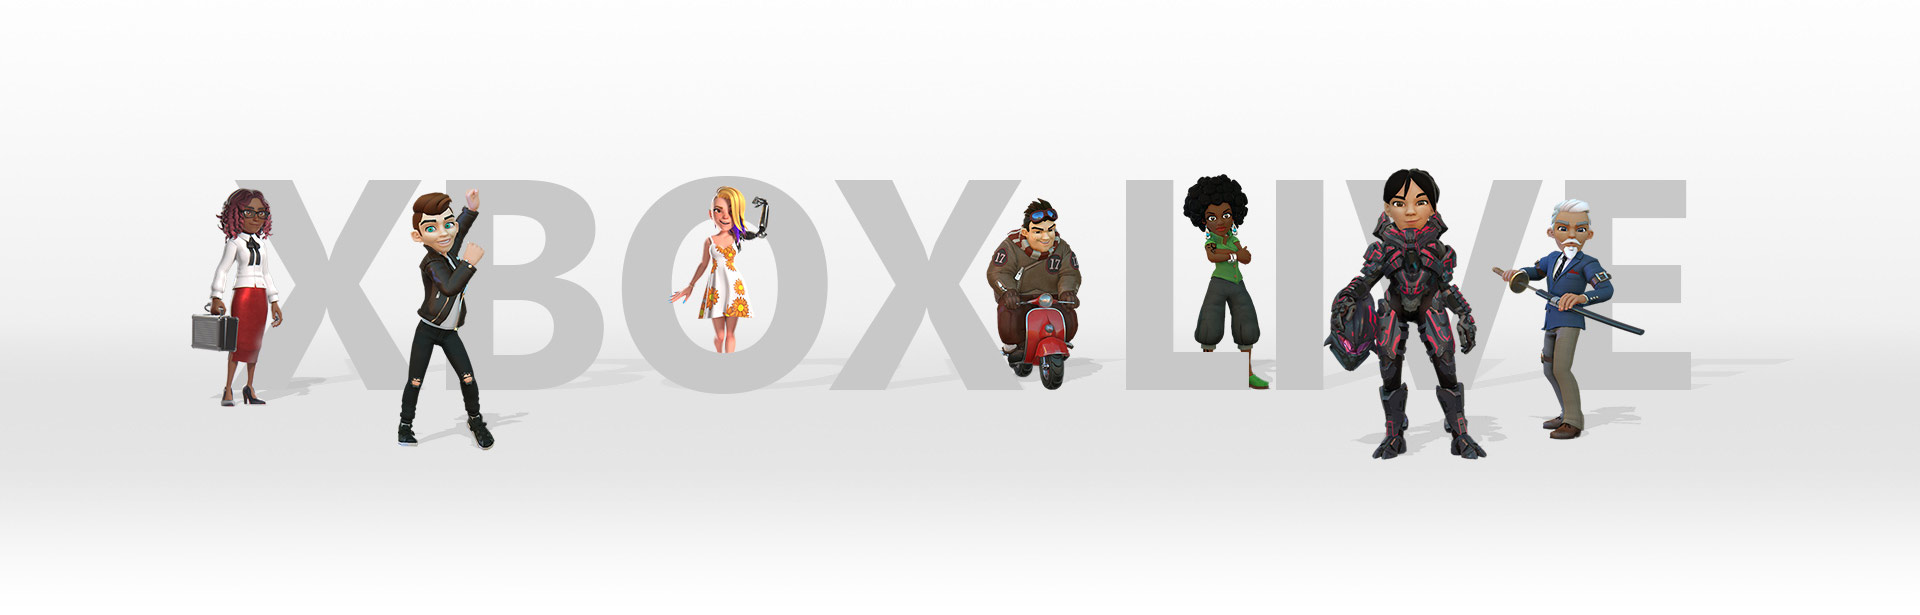 7 Avatars posing with the Xbox live logo